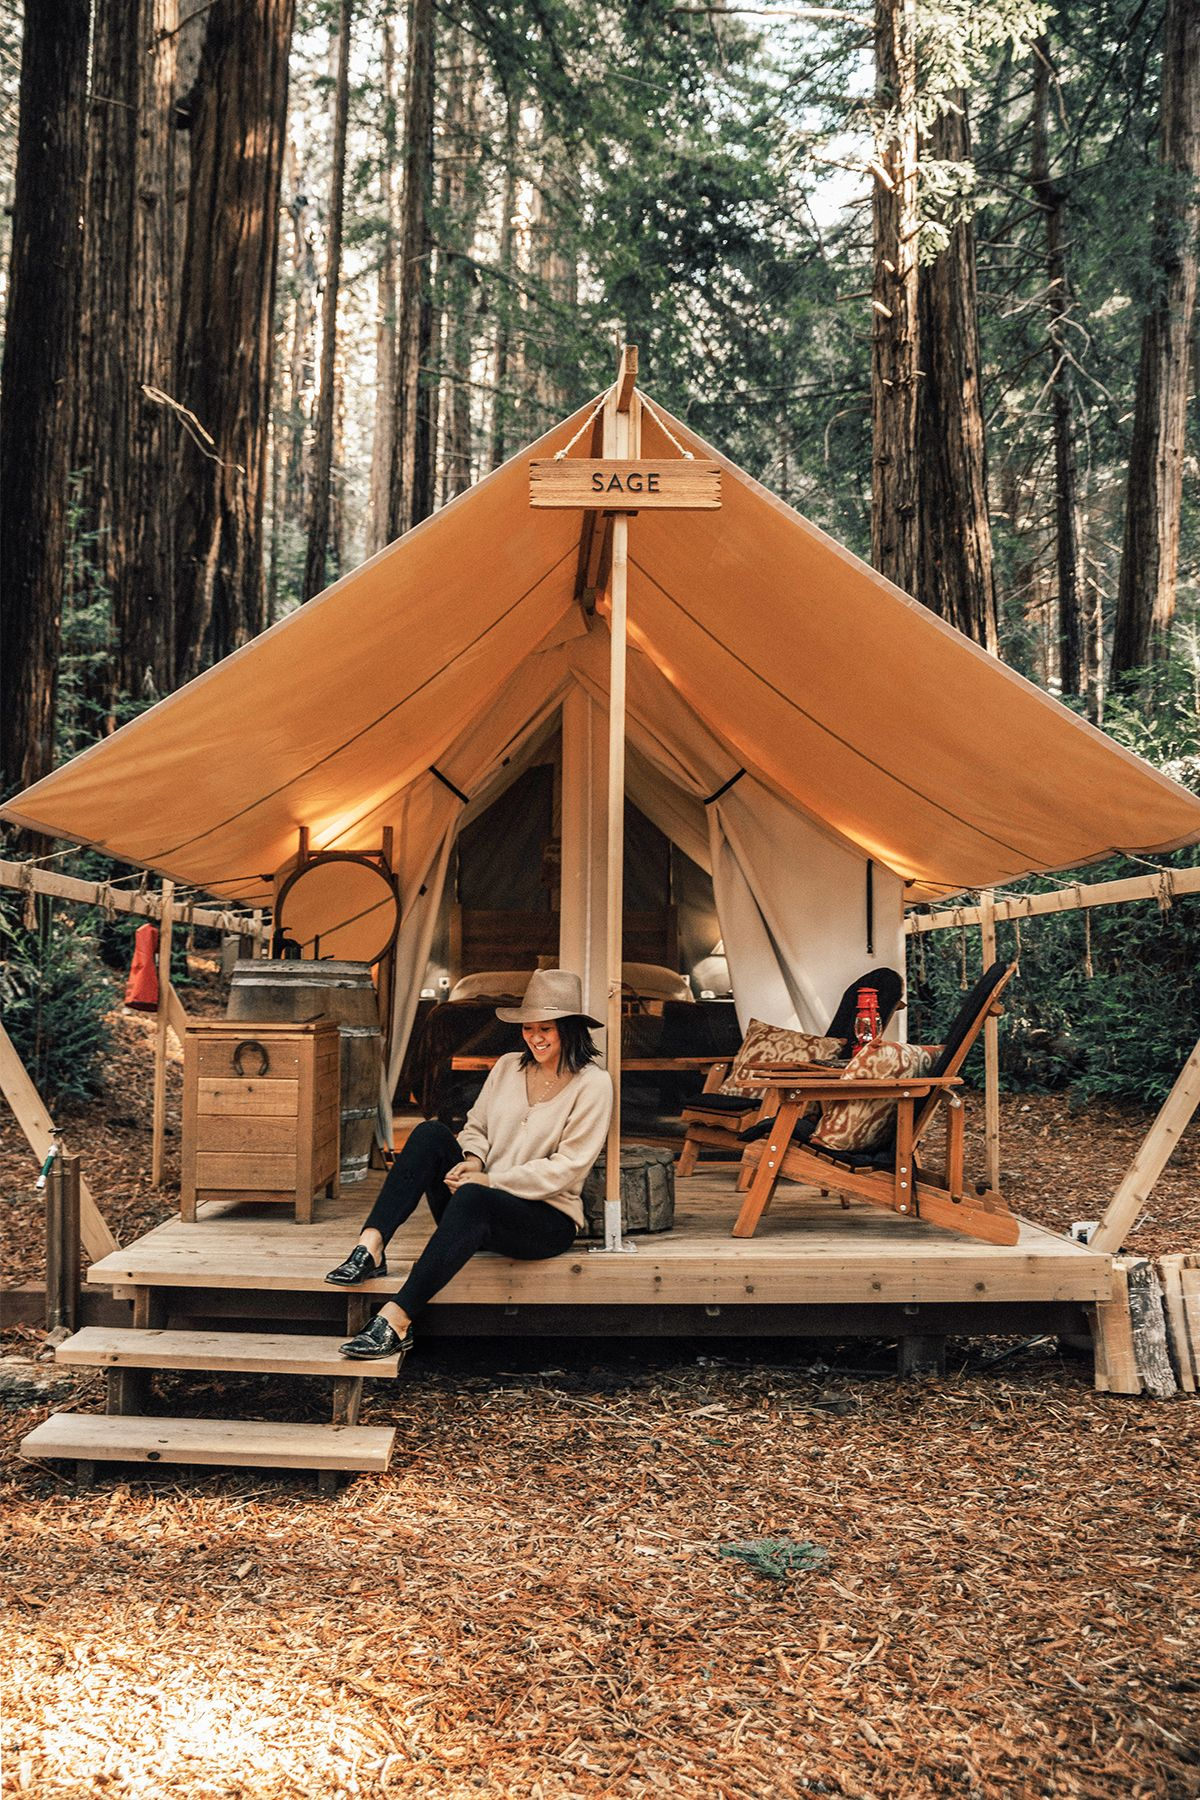 Visiting Big Sur Honestly Wtf Tent Glamping Camping Glamping Luxury Camping